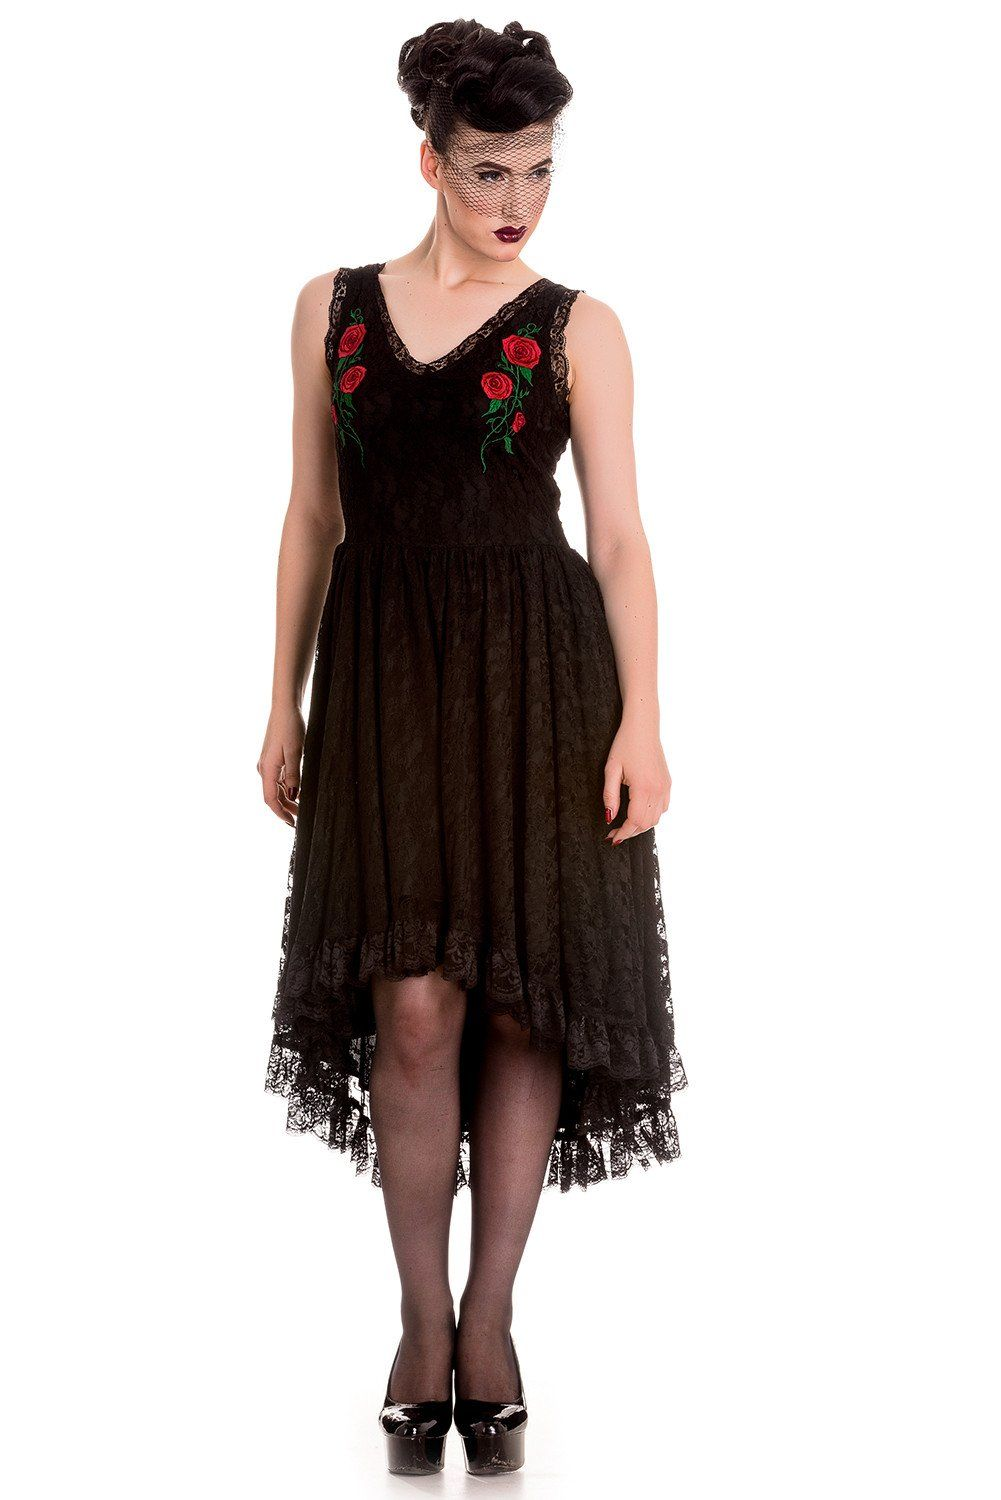 bfe9fcfd8030 Spin Doctor Gothic Midnight Dance Black Floral Lace High-low Party Dress,  $75.95,